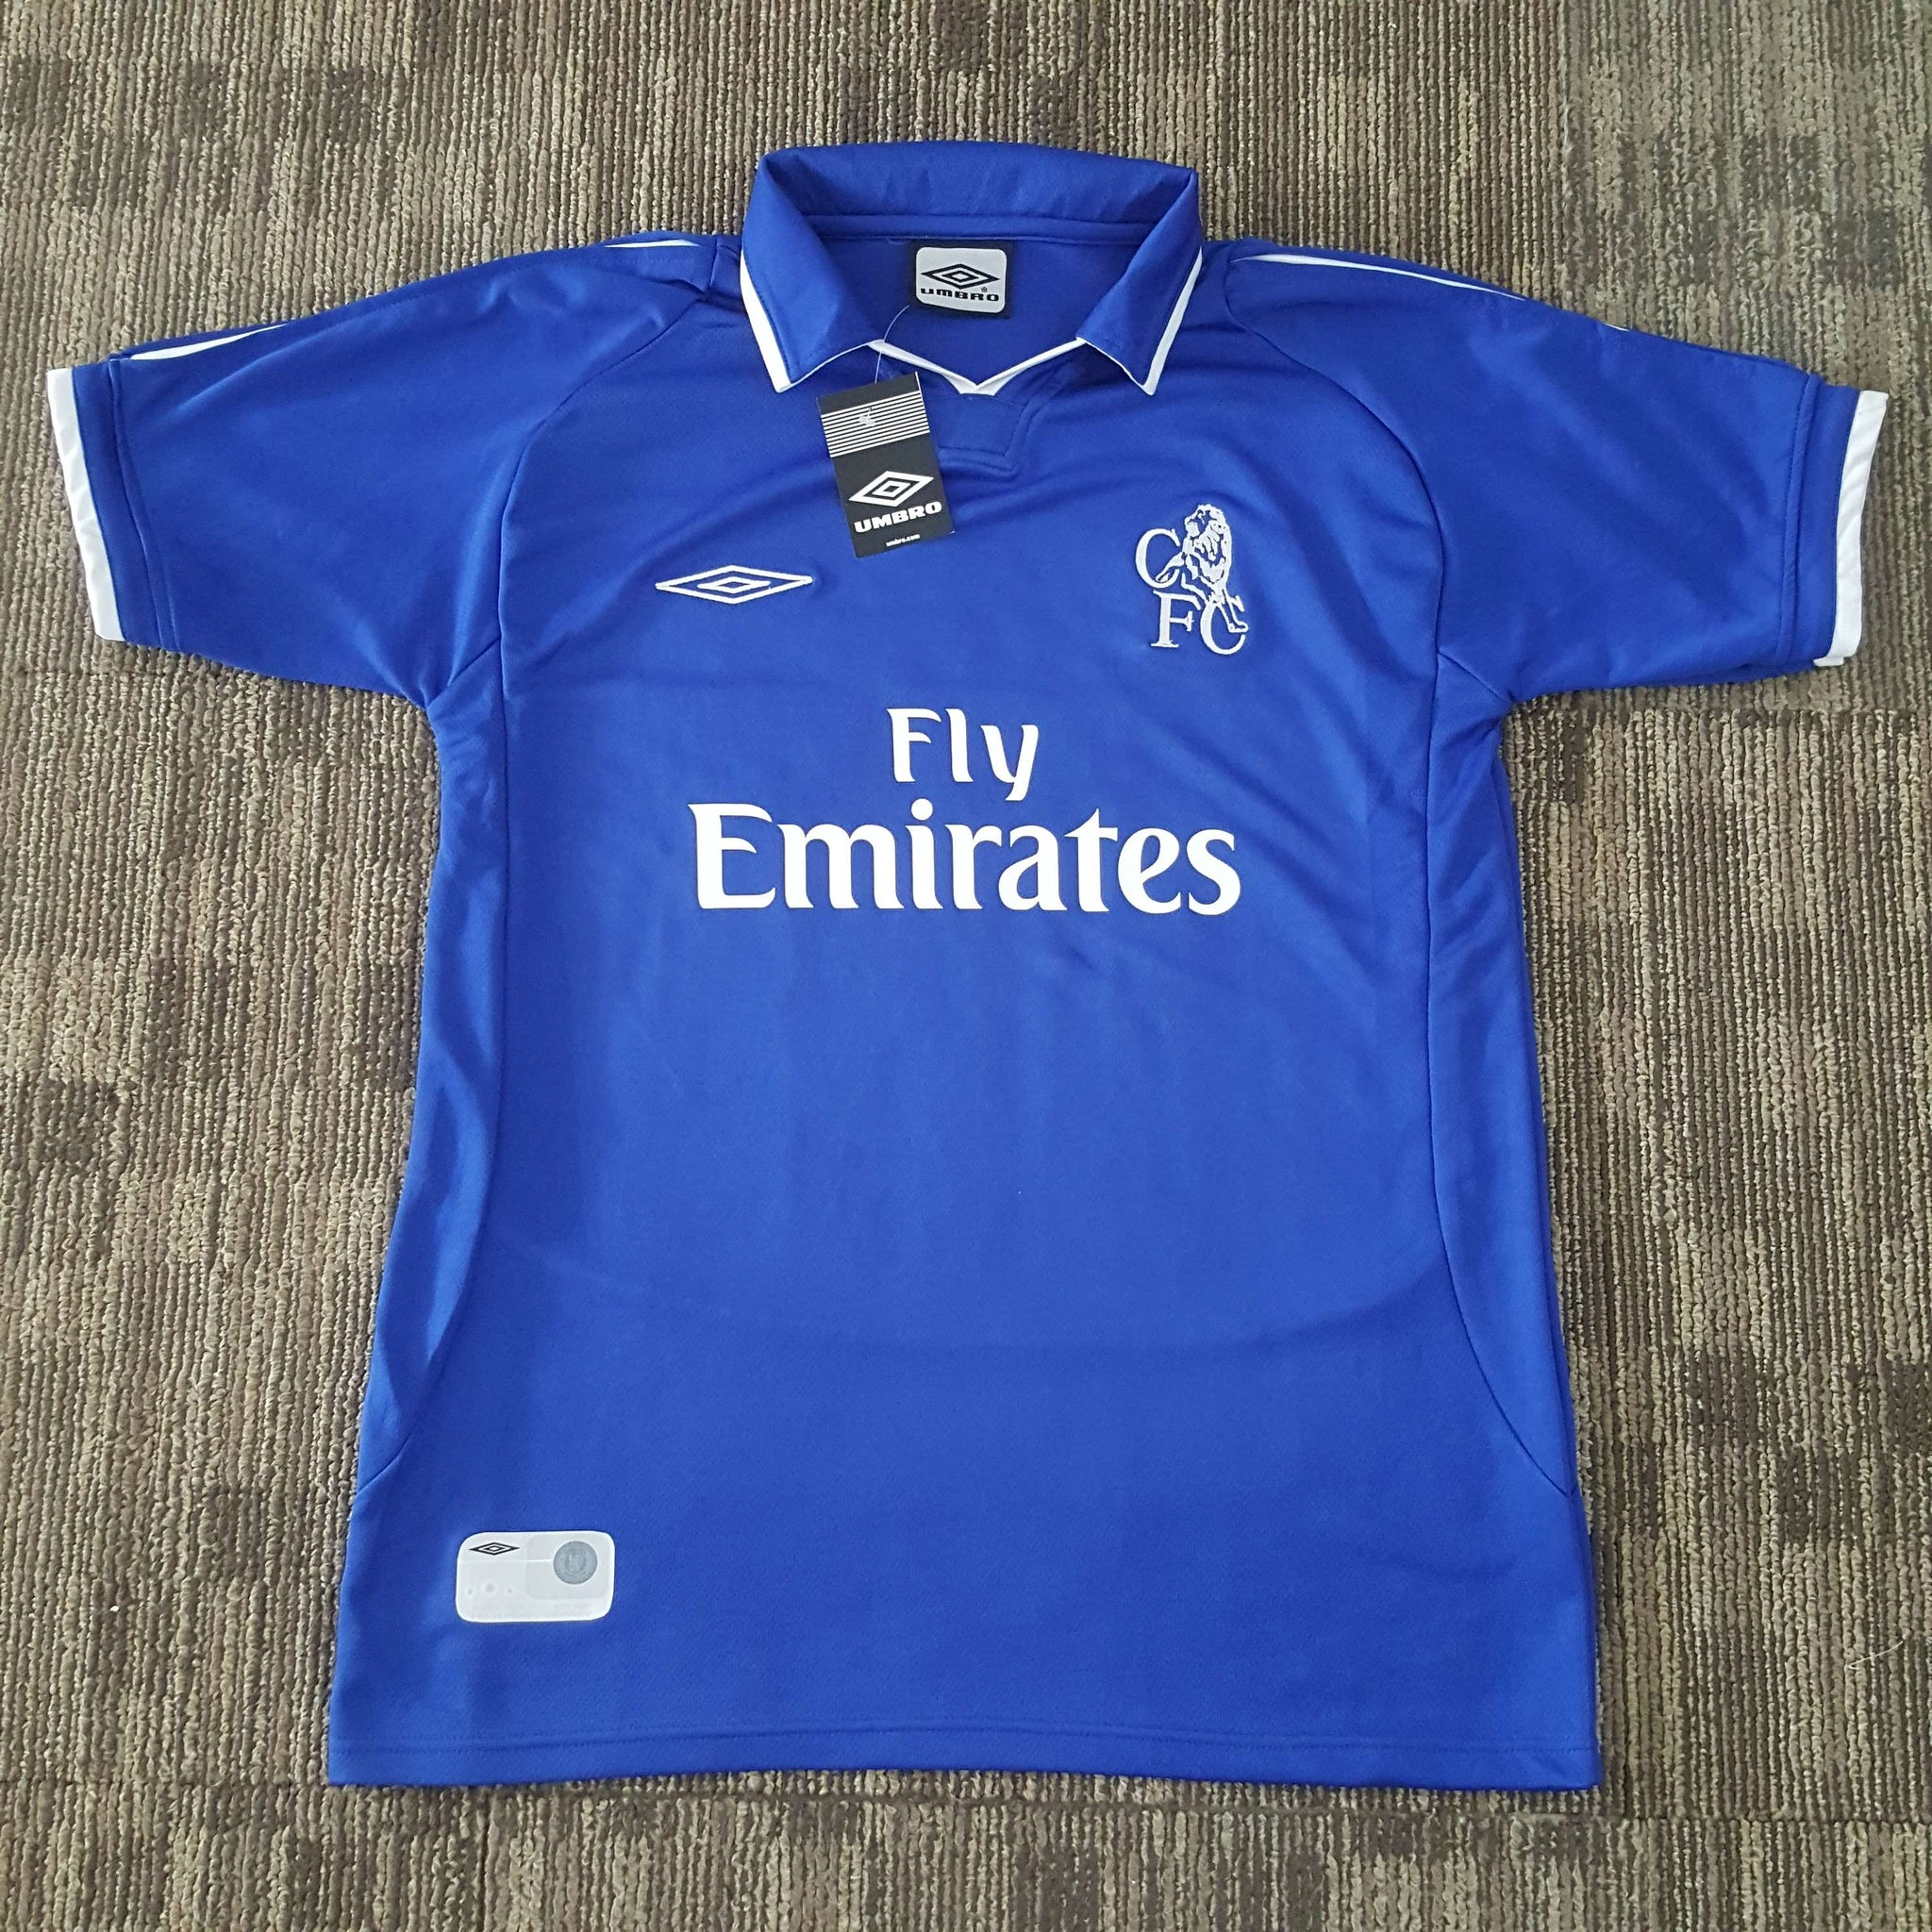 check out ca3b1 1750e 2001/02 Chelsea Home Shirt – Classic Football Jersey